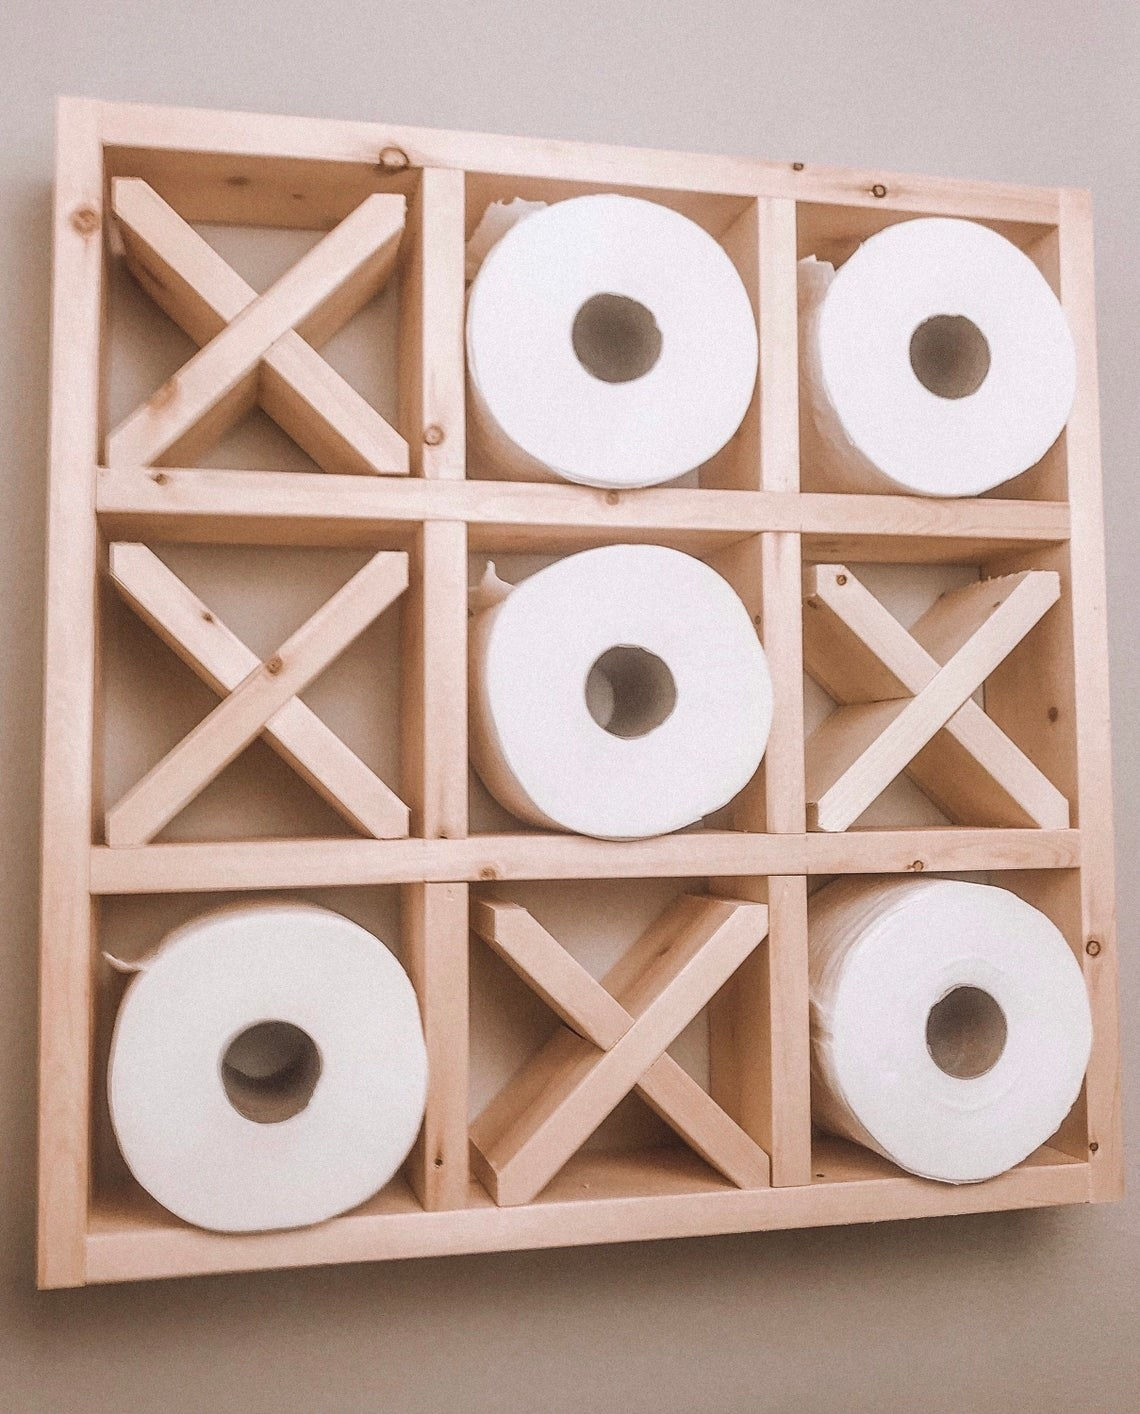 Wood shelf with nine squares. Four are filled with wooden X shapes and the rest are filled with toilet paper rolls.